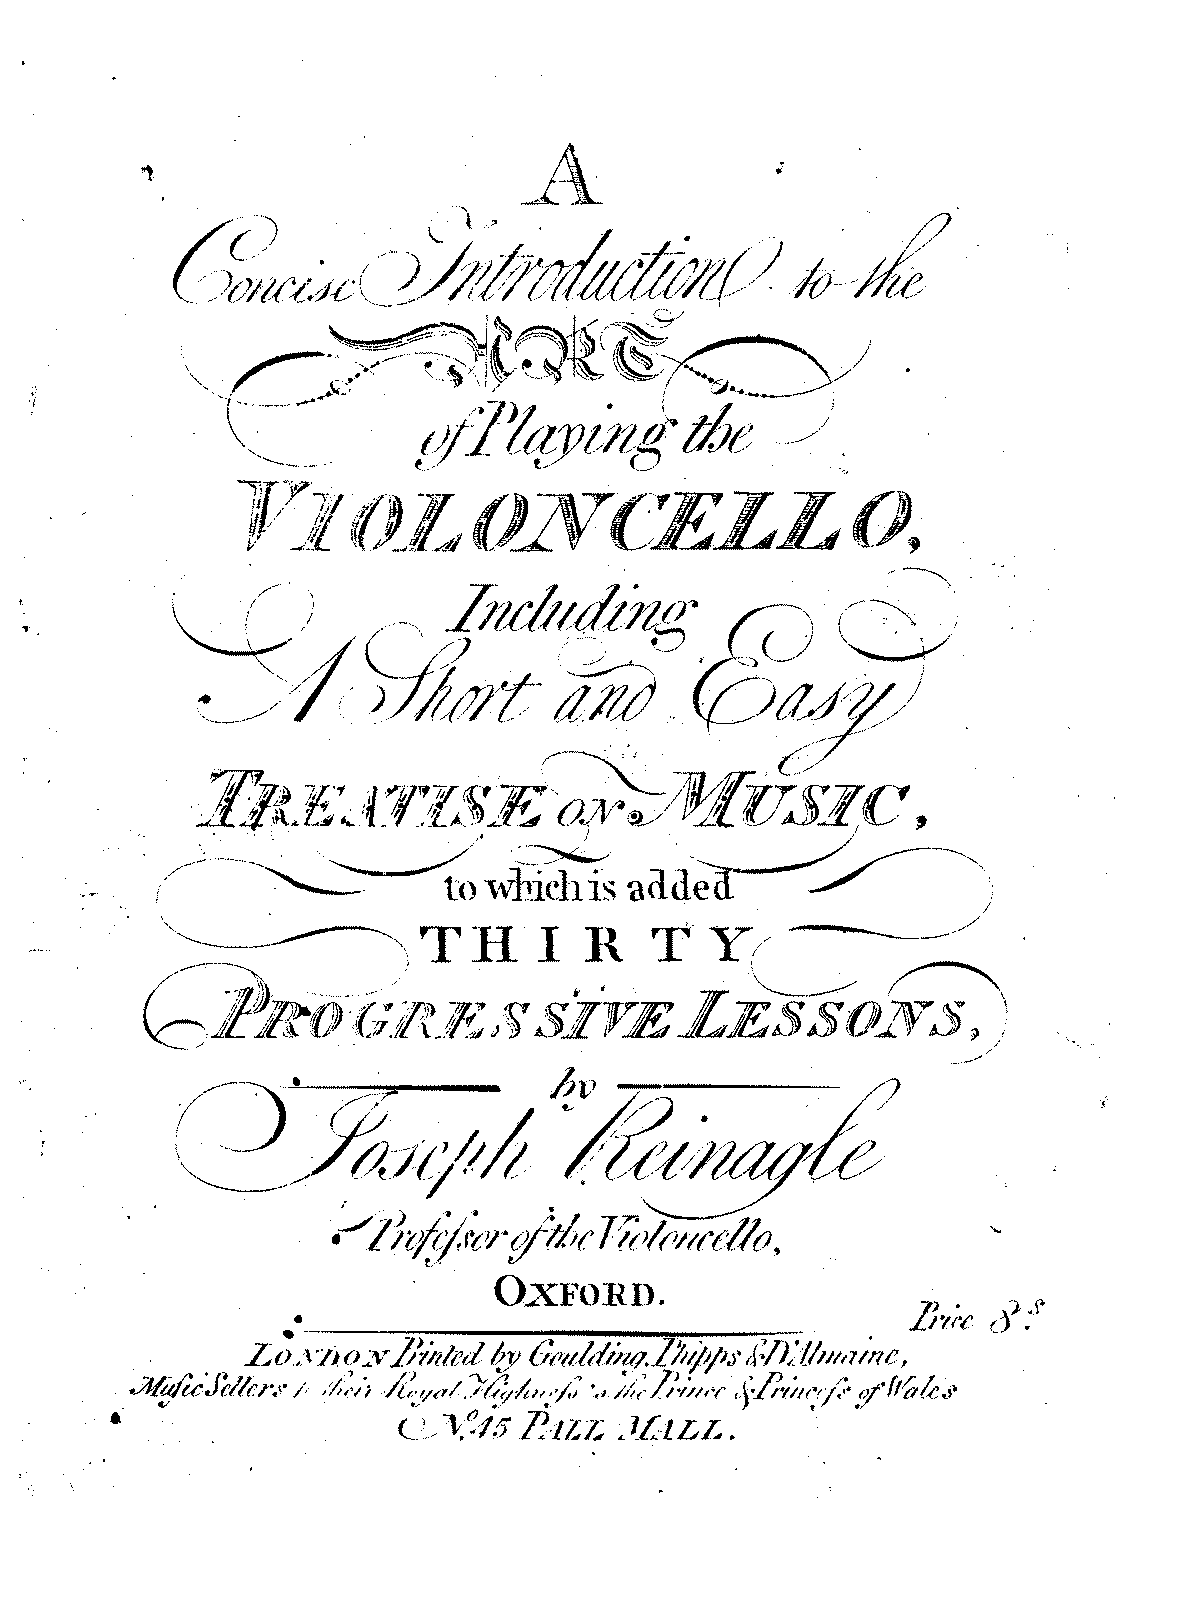 PMLP126095-Reinagle - A Concise Introduction to the art of playing the Violoncello, including treatise on music and 30 progressive lessons.pdf